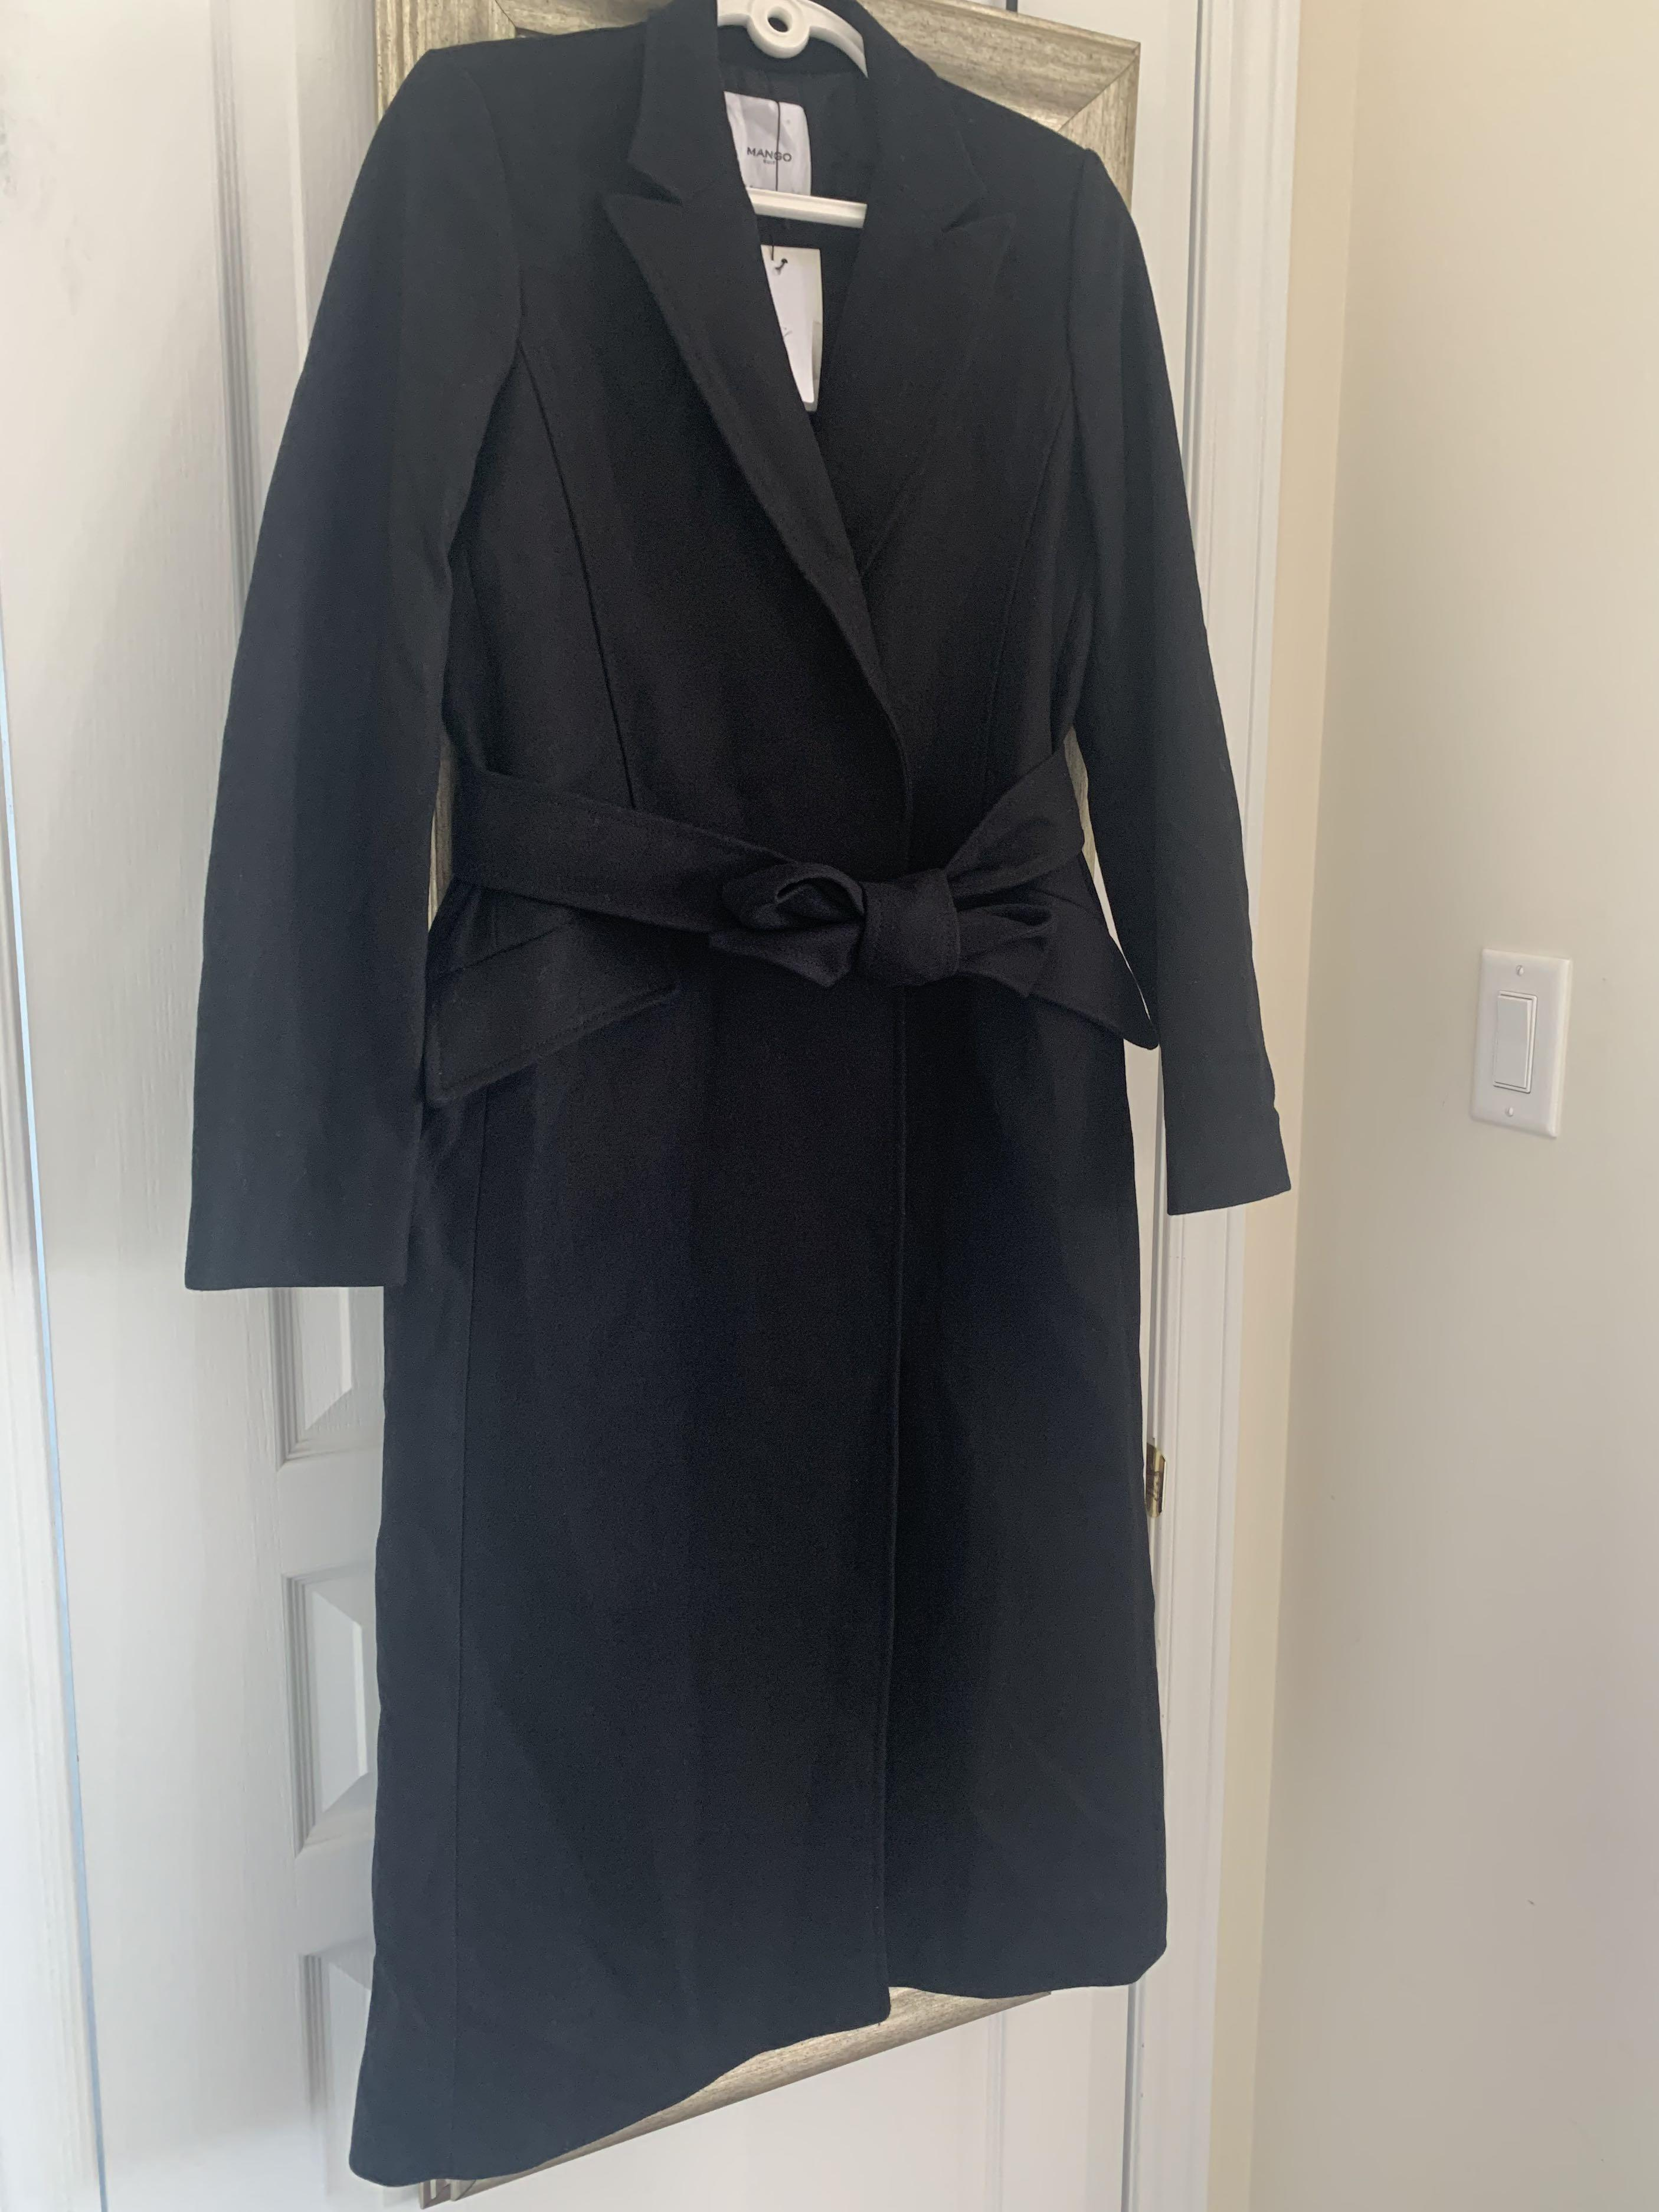 BNWT Mango Wool Coat